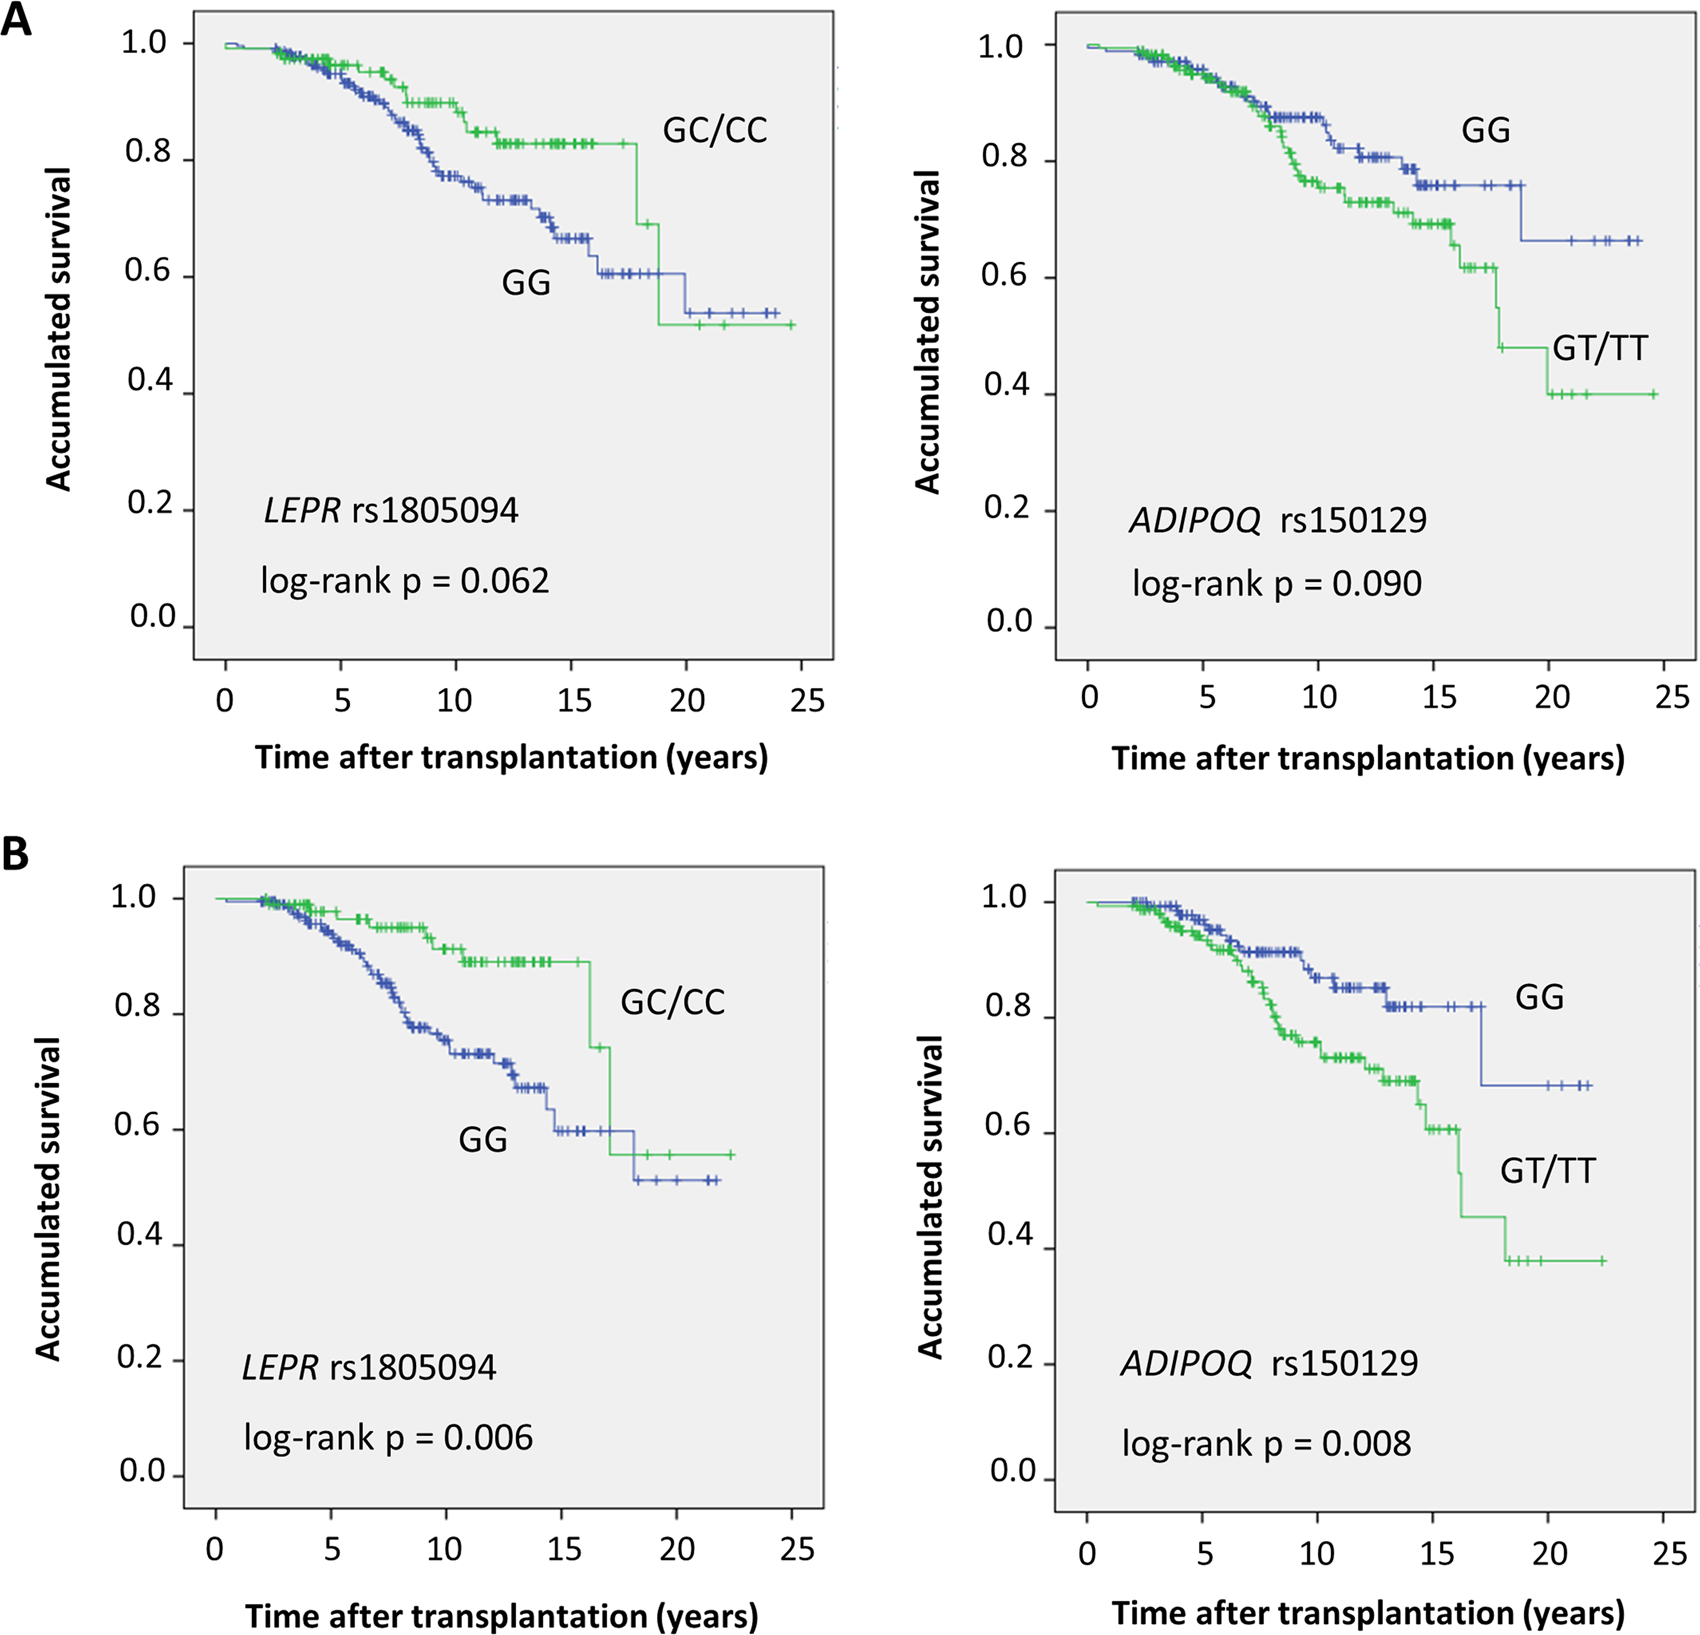 Association of polymorphisms in leptin and adiponectin genes with long